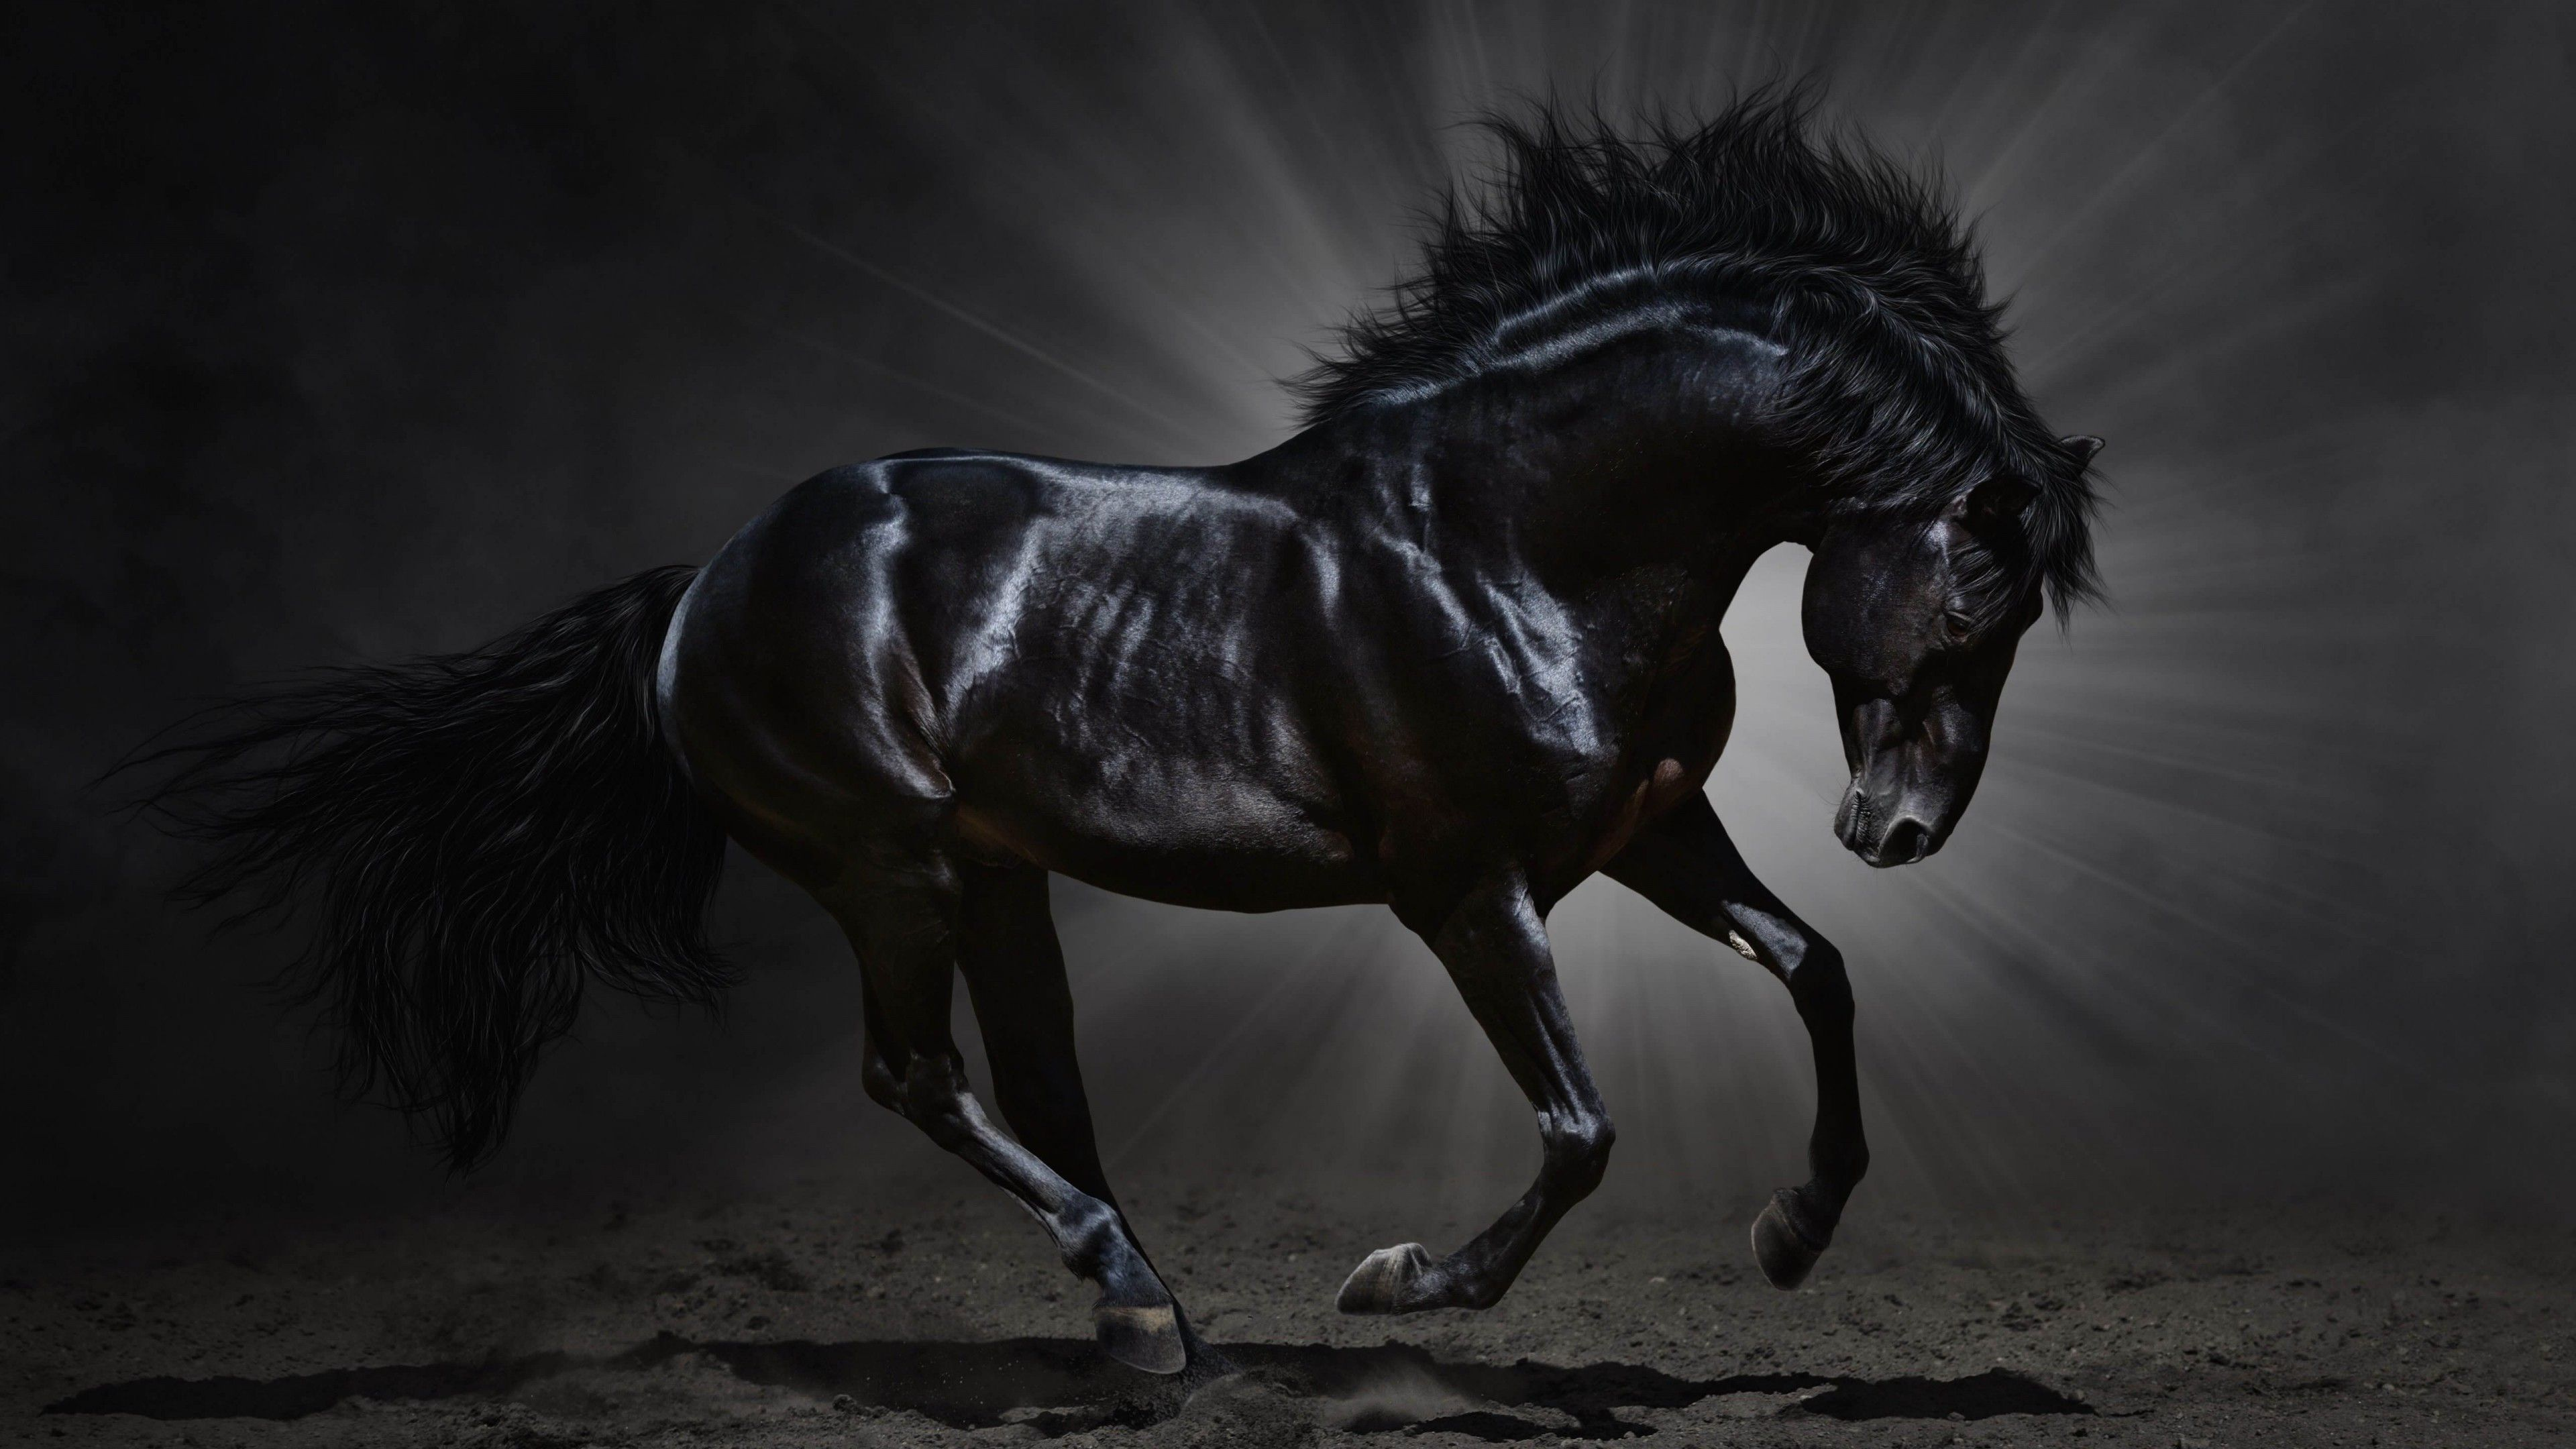 Black Horse Desktop Wallpaper Download Dark Horse Hd Wallpaper For 4k 3840 X 2160 Hdwallpapers Net Horses Horse Wallpaper Horse Pictures